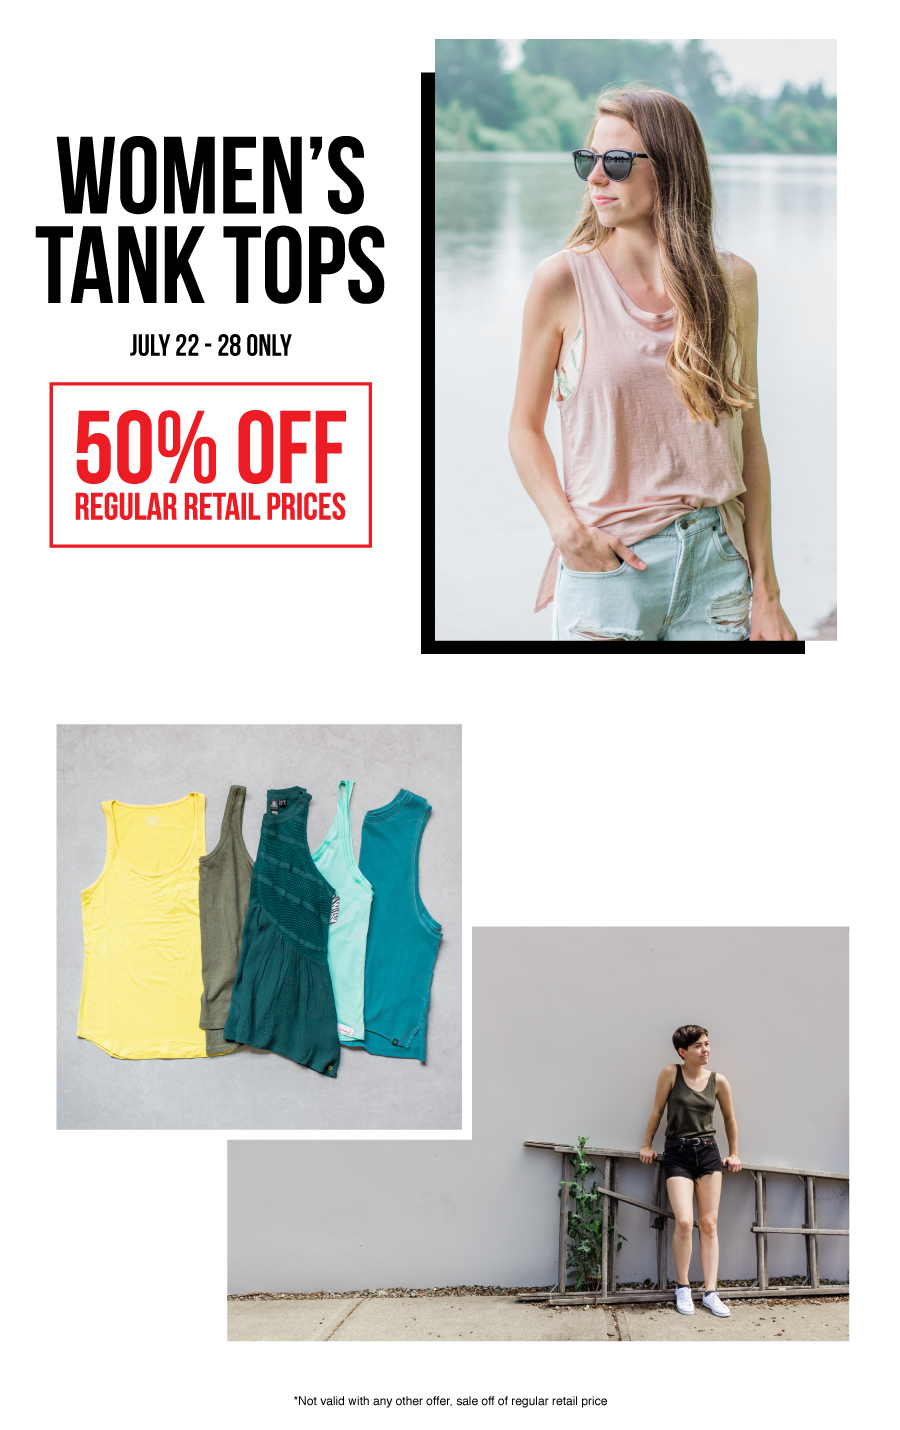 DEal of the week, women's tank tops